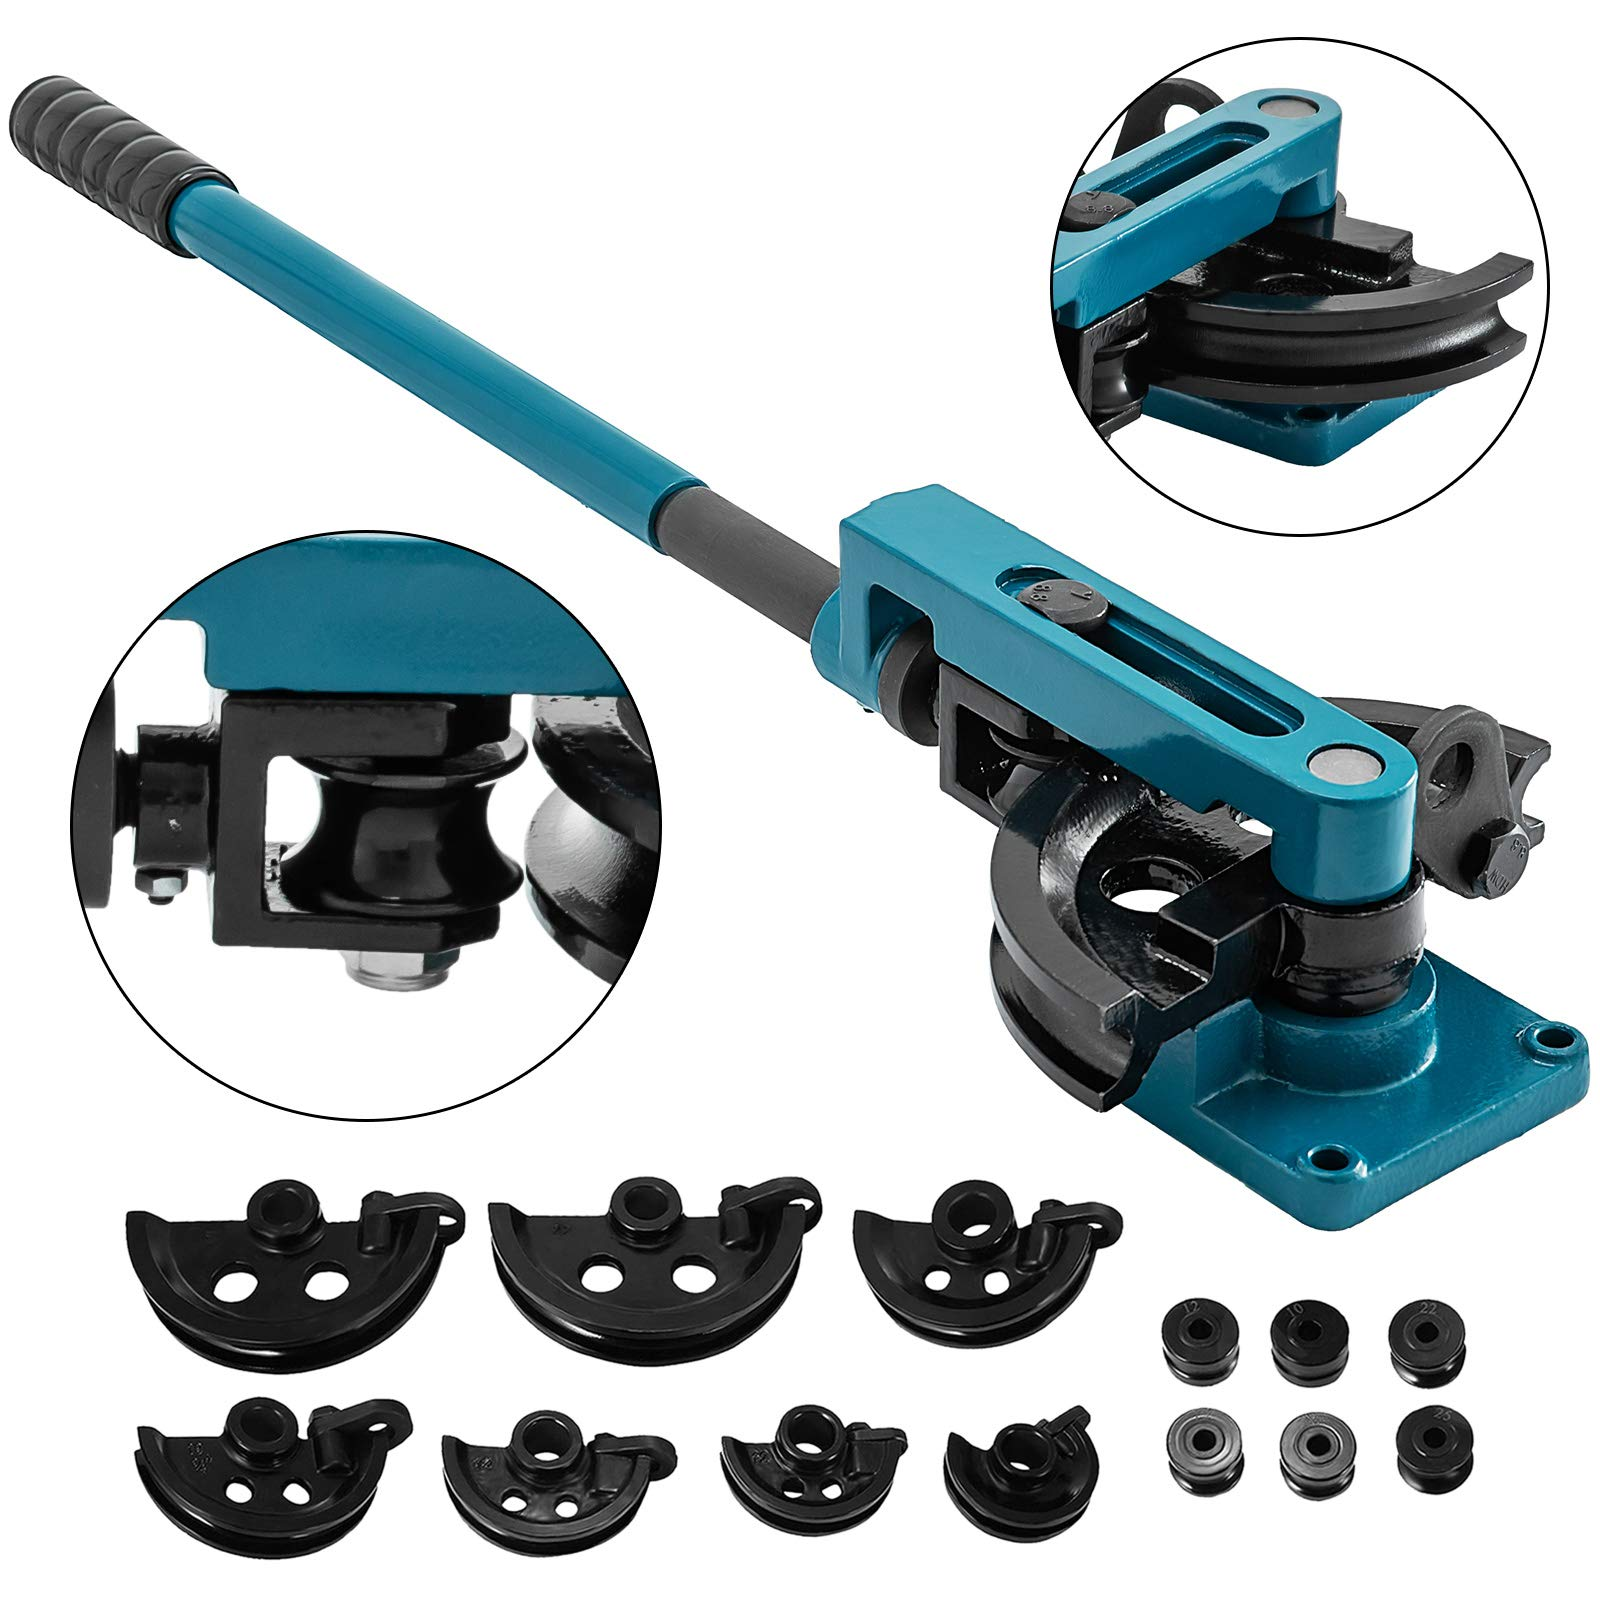 0.047 Wall Thickness 180 Degrees Bend Angle Baileigh RDB-25 Cast Iron Manual Rotary Draw Tube Bending Set